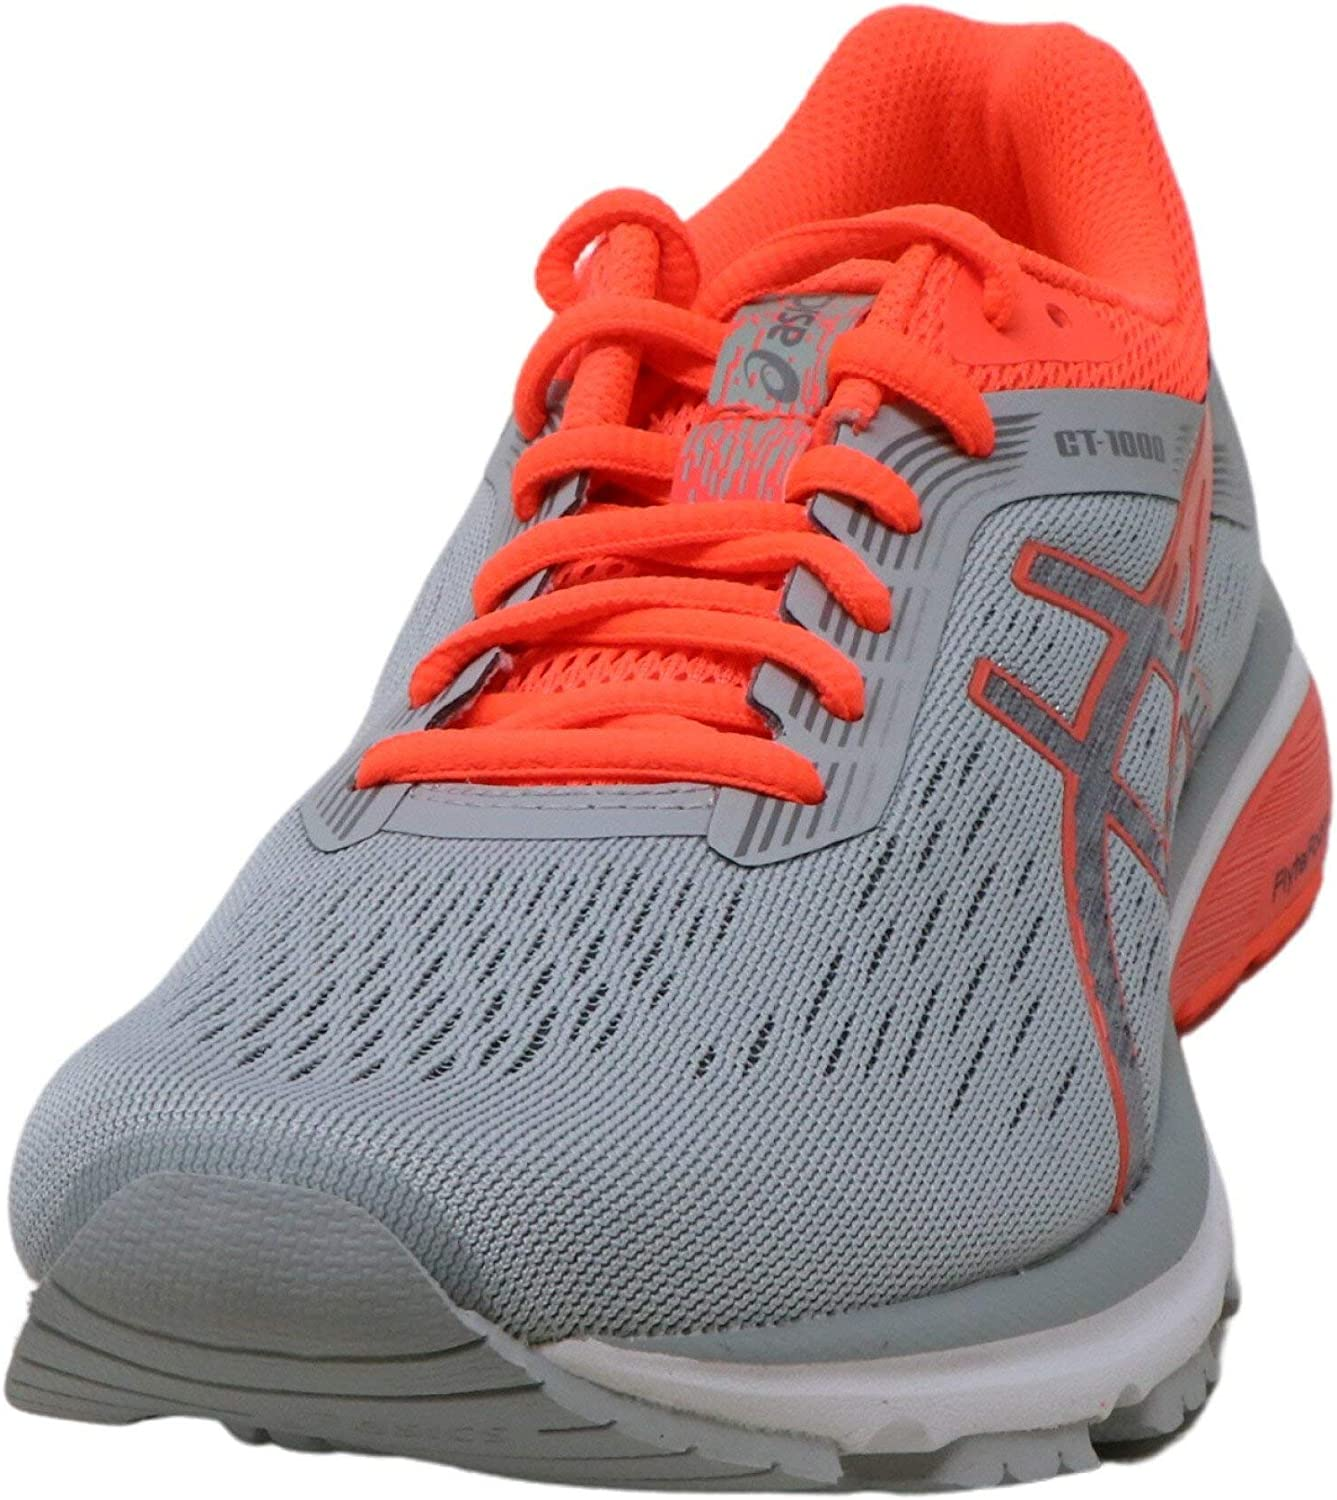 ASICS Women's GT-1000 7 (D) Running Shoes